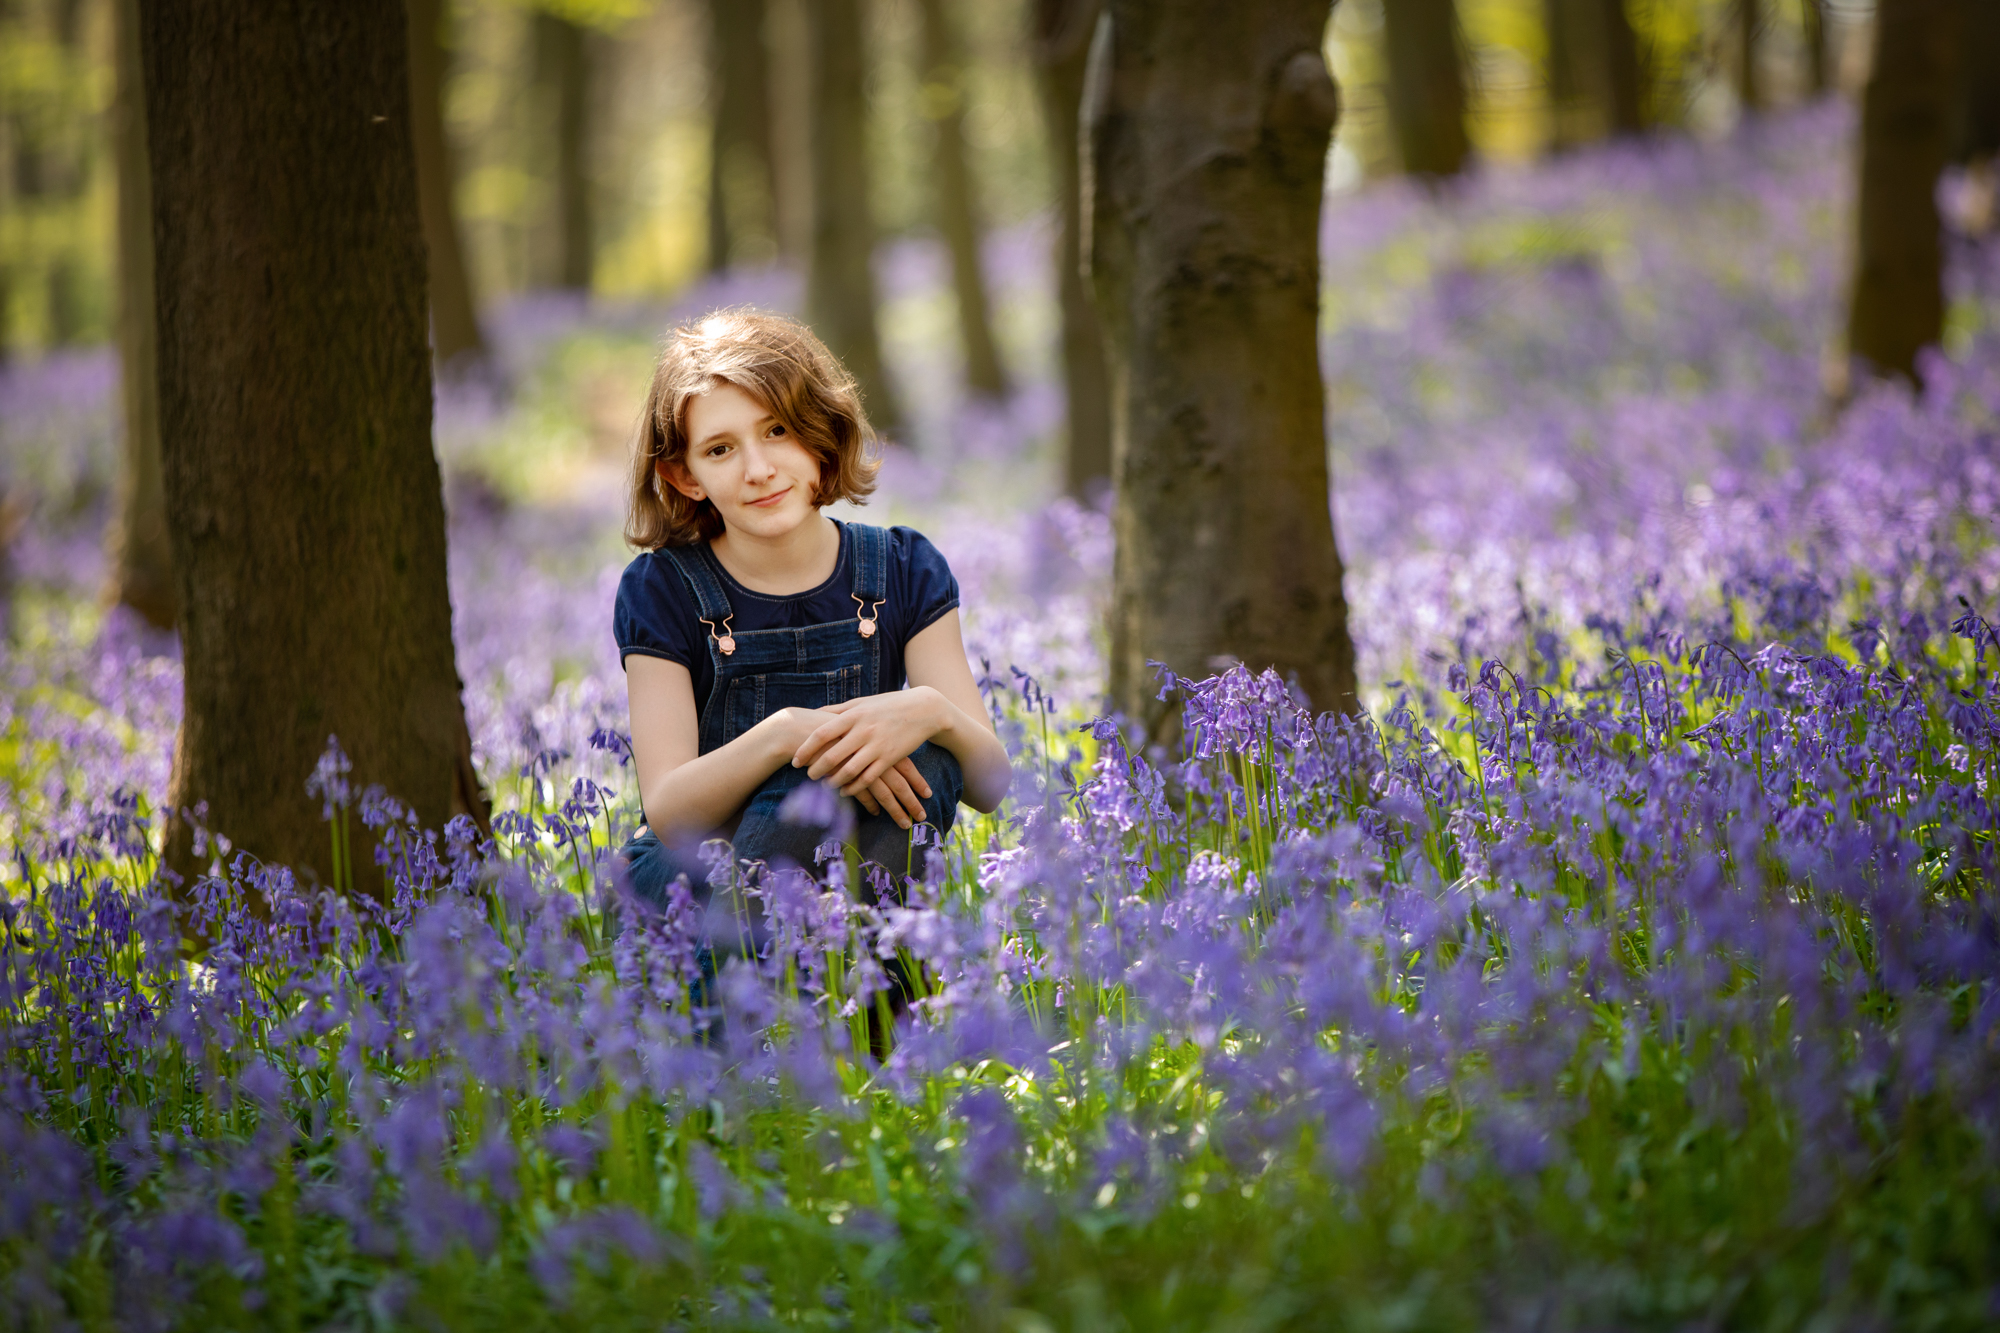 Amongst the bluebells in Shoreham, Kent. I love the serenity of this photo - such peacefulness and solitary amongst the sea of bluebells in a woody forest. This image was shot at 1/500 sec, f/2.8, ISO 320 at 200mm. It wasn't the ideal time with the sun directly above but we were able to find some shade and minimise the dappled light of the woods.